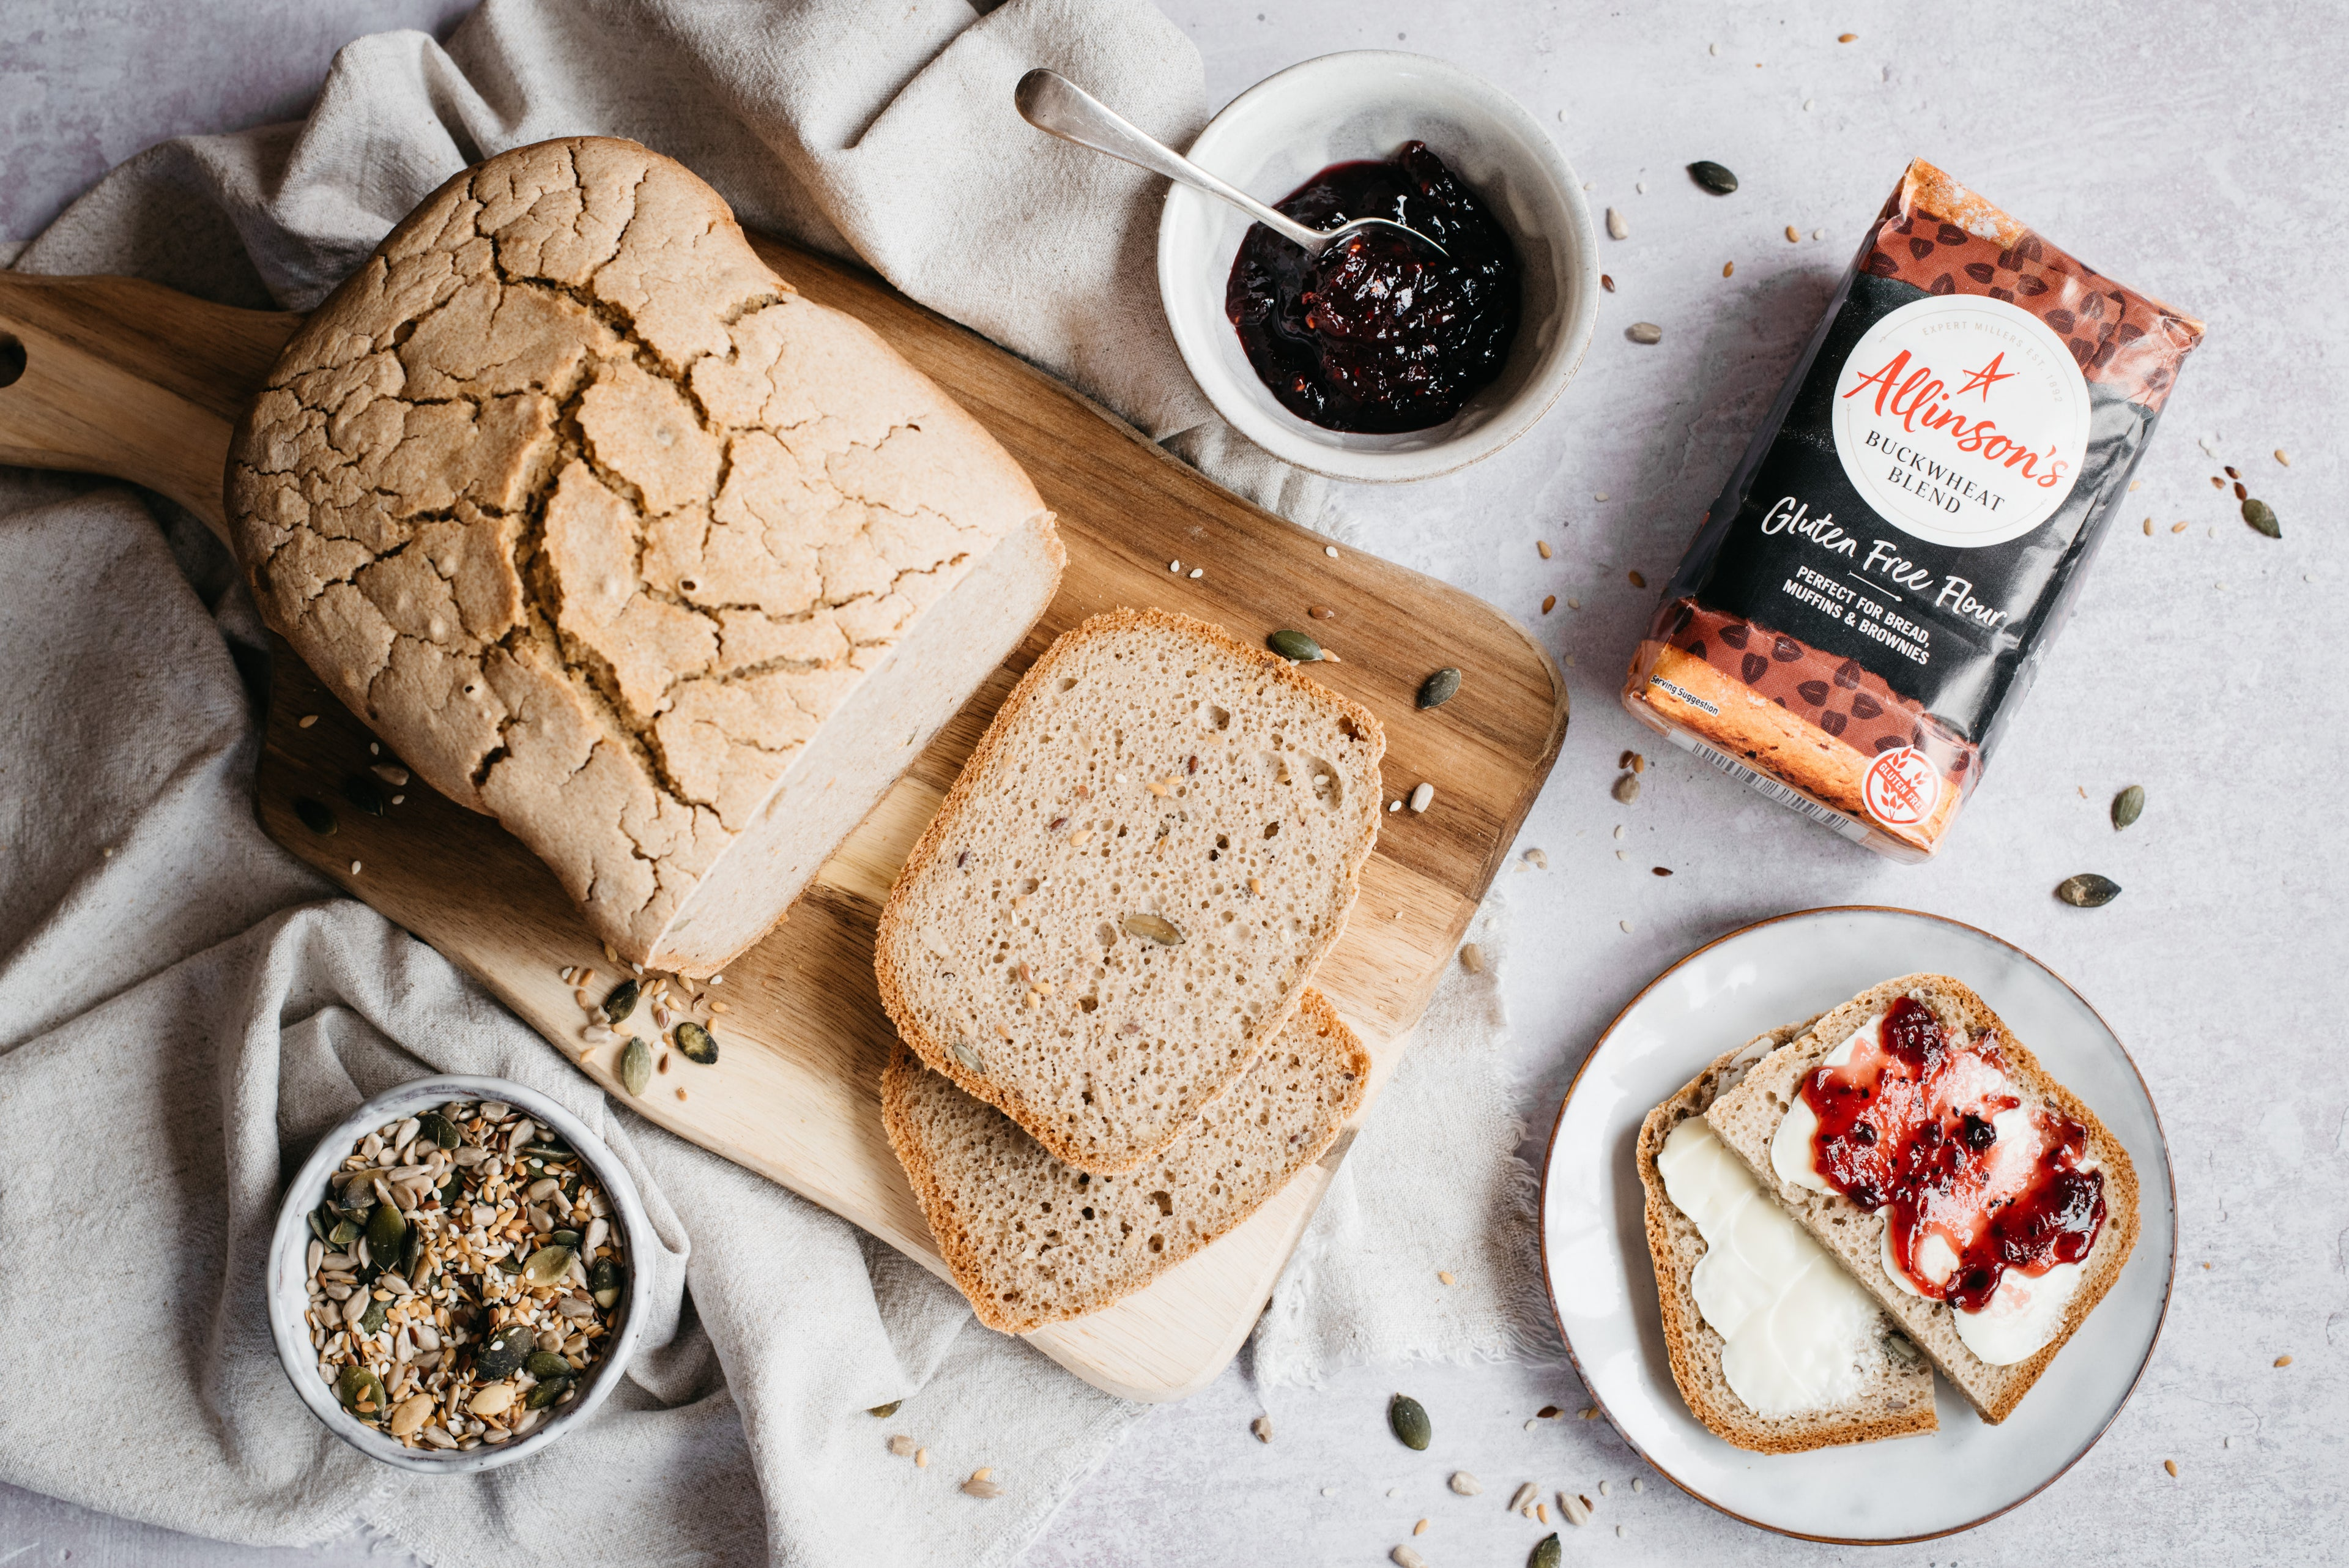 Gluten Free loaf with slices laid infront, flour pack, bowl of seeds and jam